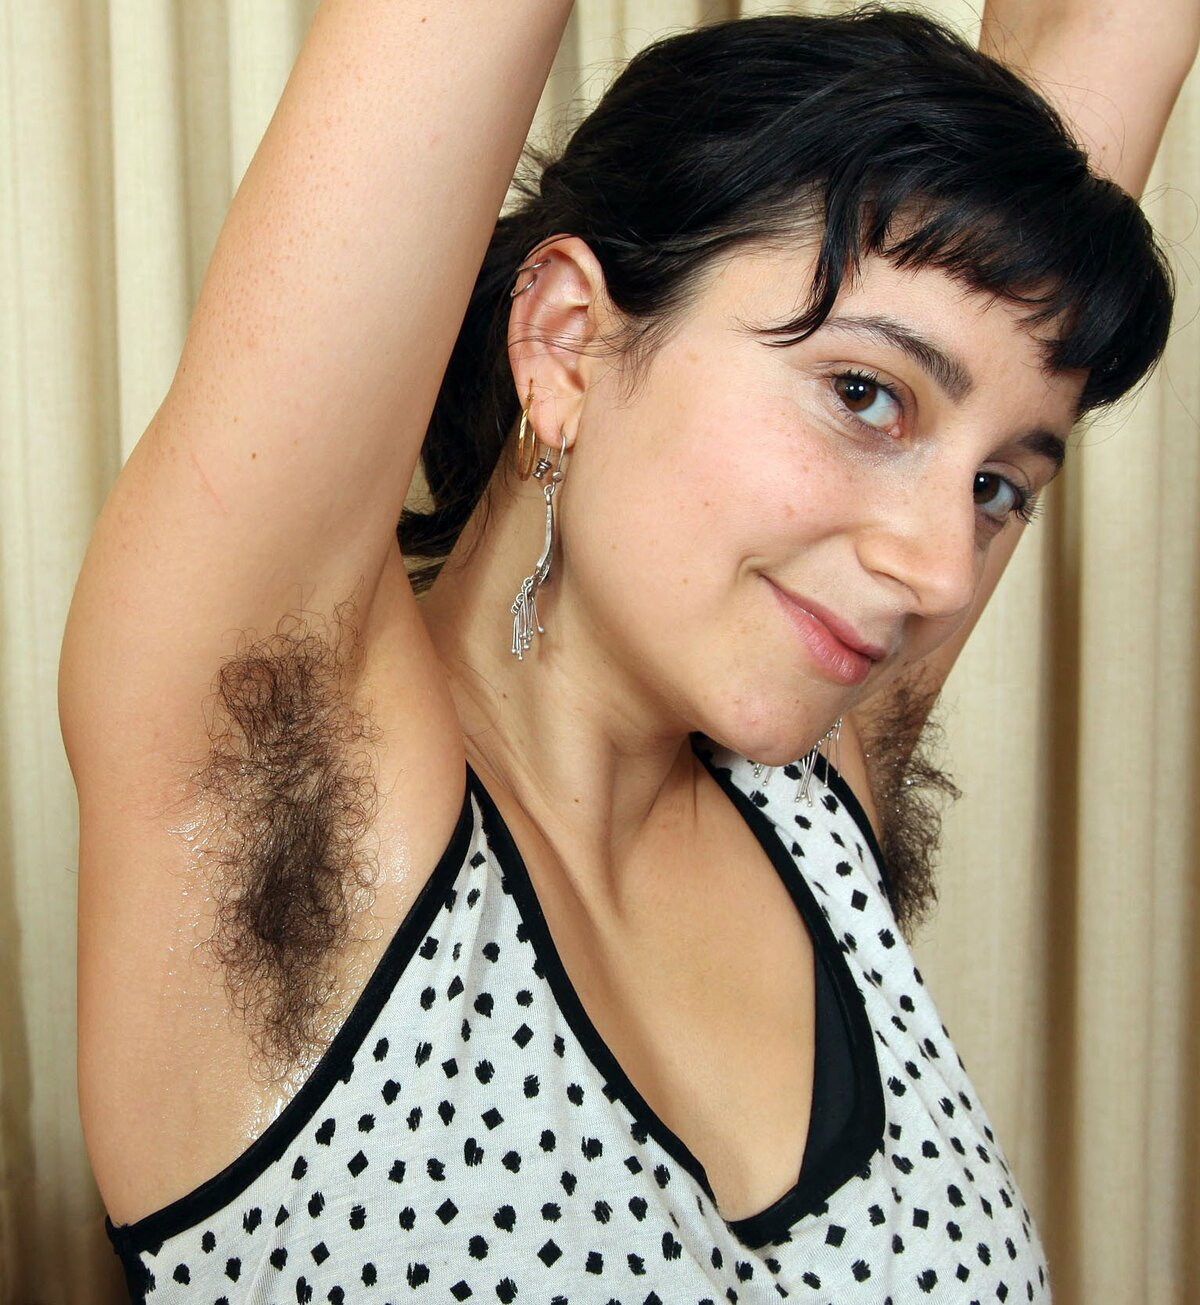 Hairy polish women